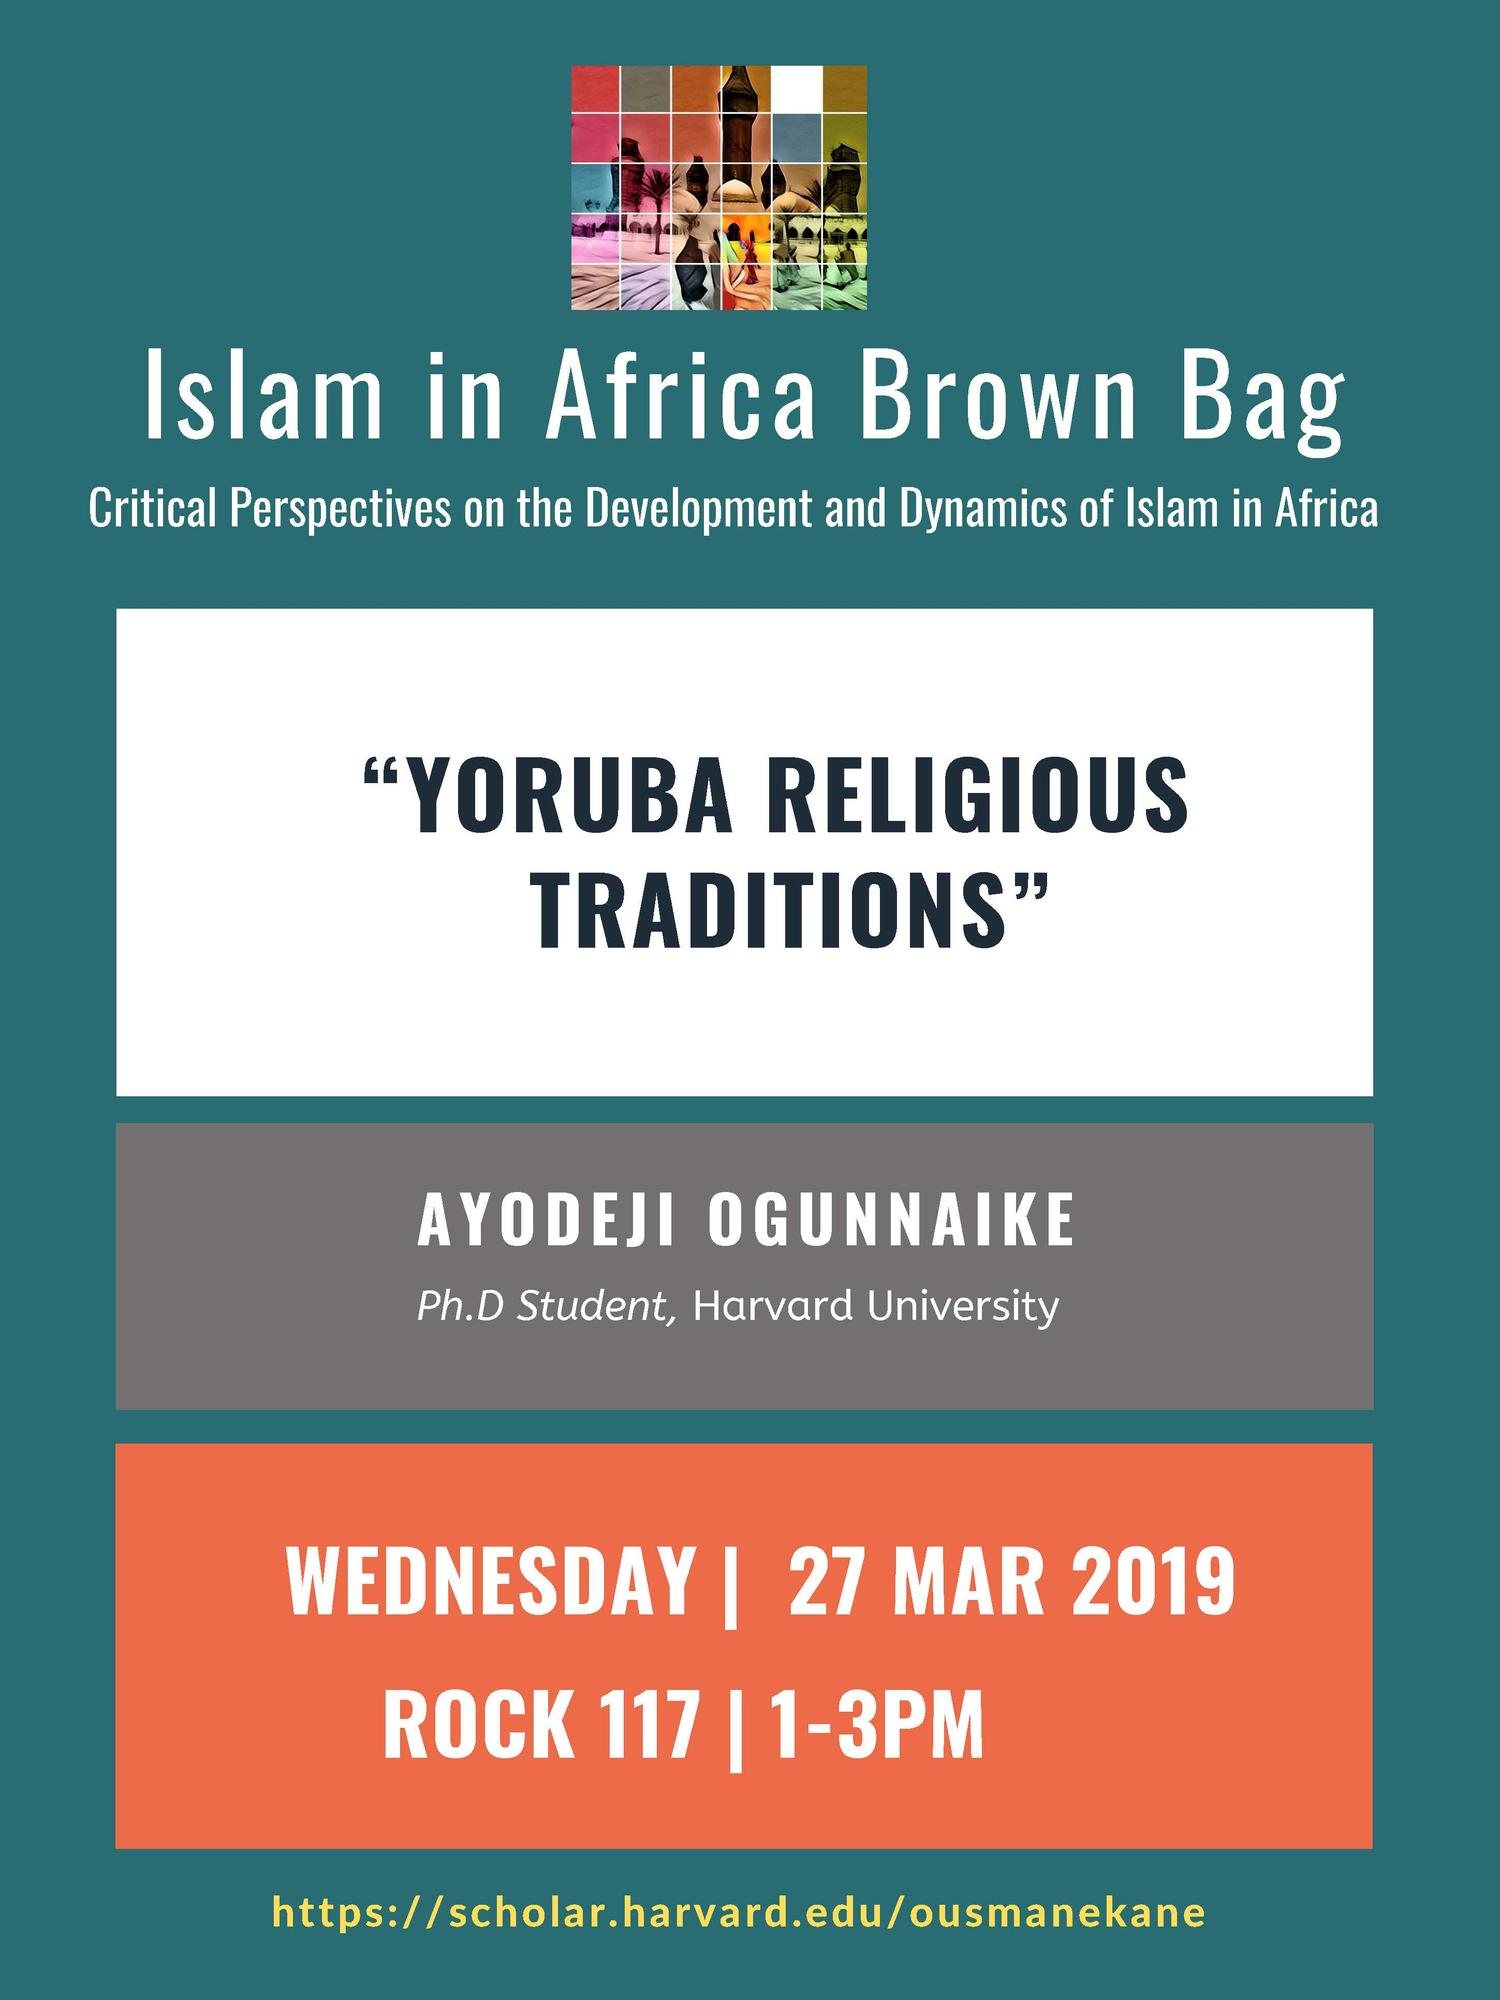 Islam in Africa March 27